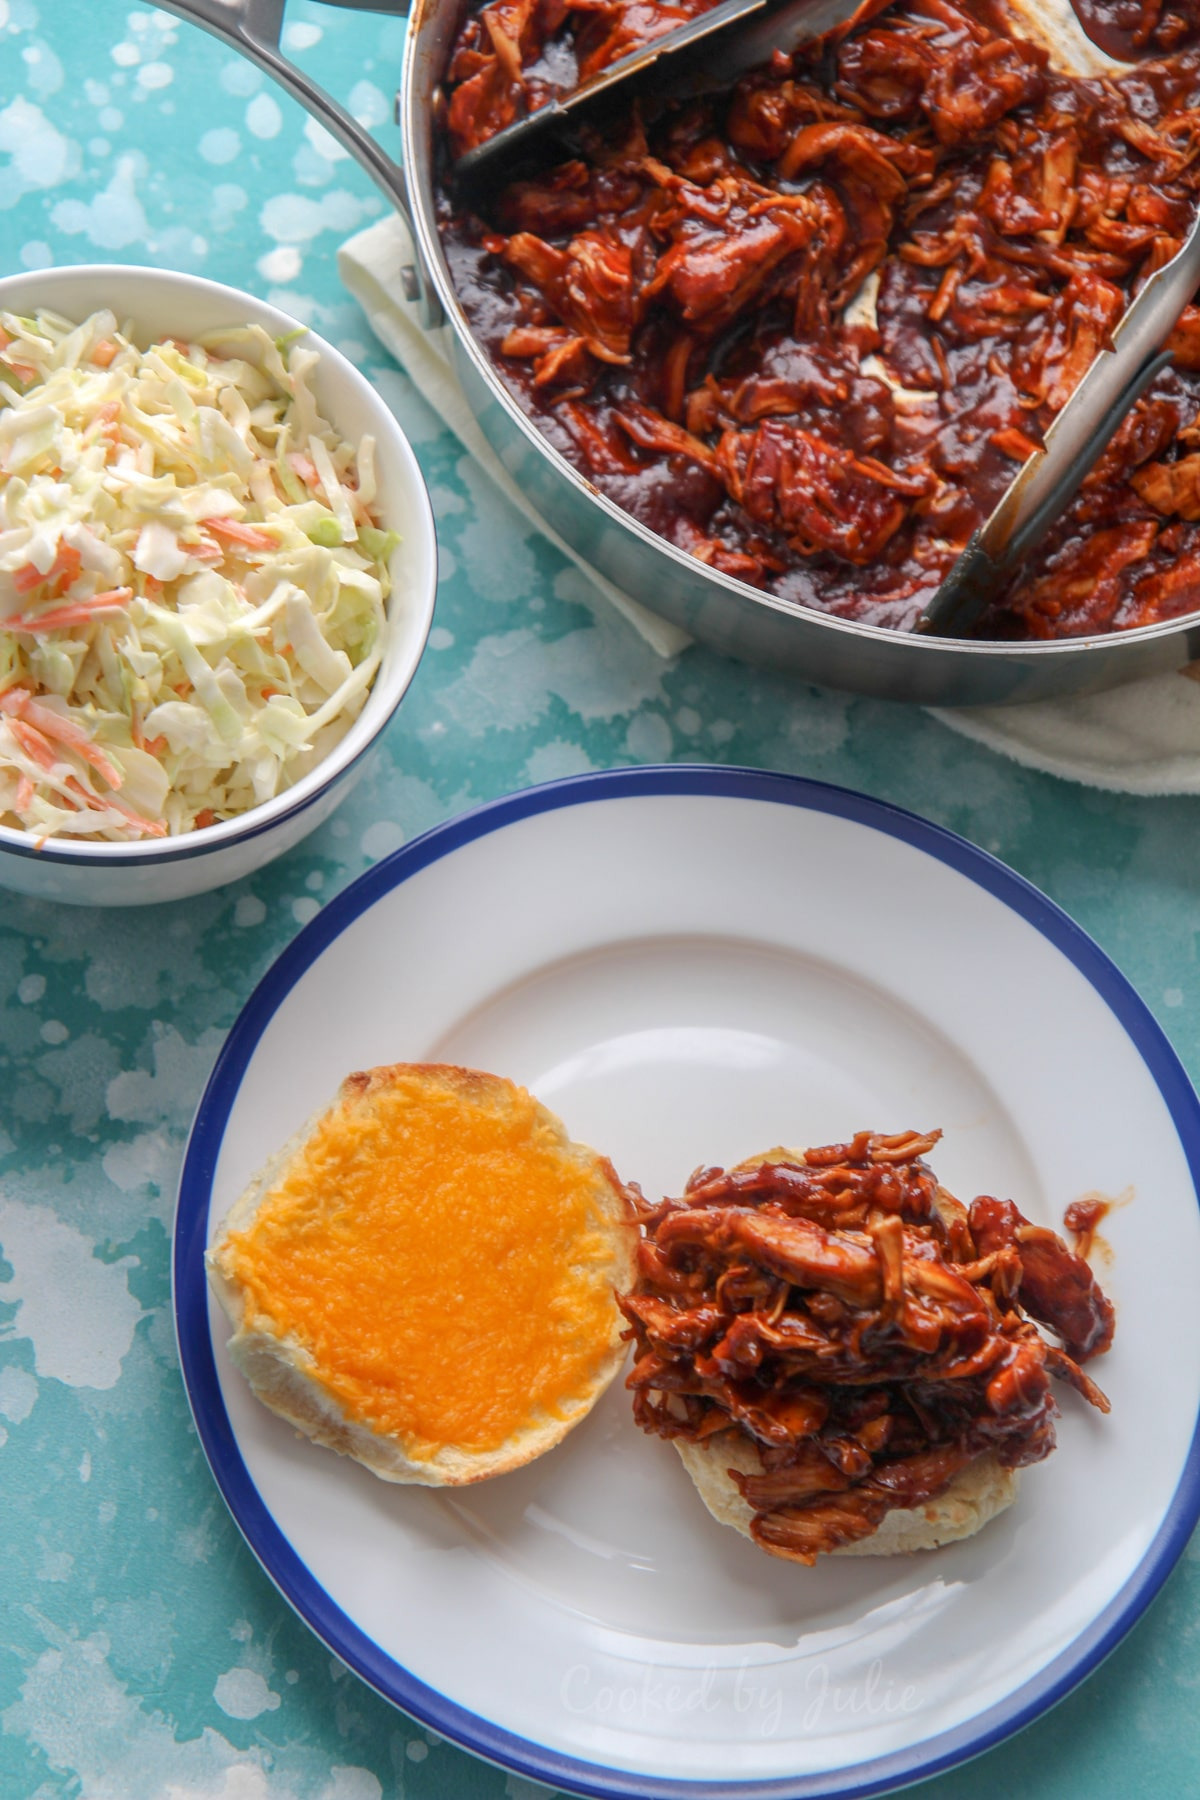 pulled chicken sandwich with cheddar cheese on a white and blue plate. Coleslaw in a bowl and pulled chicken in a skillet